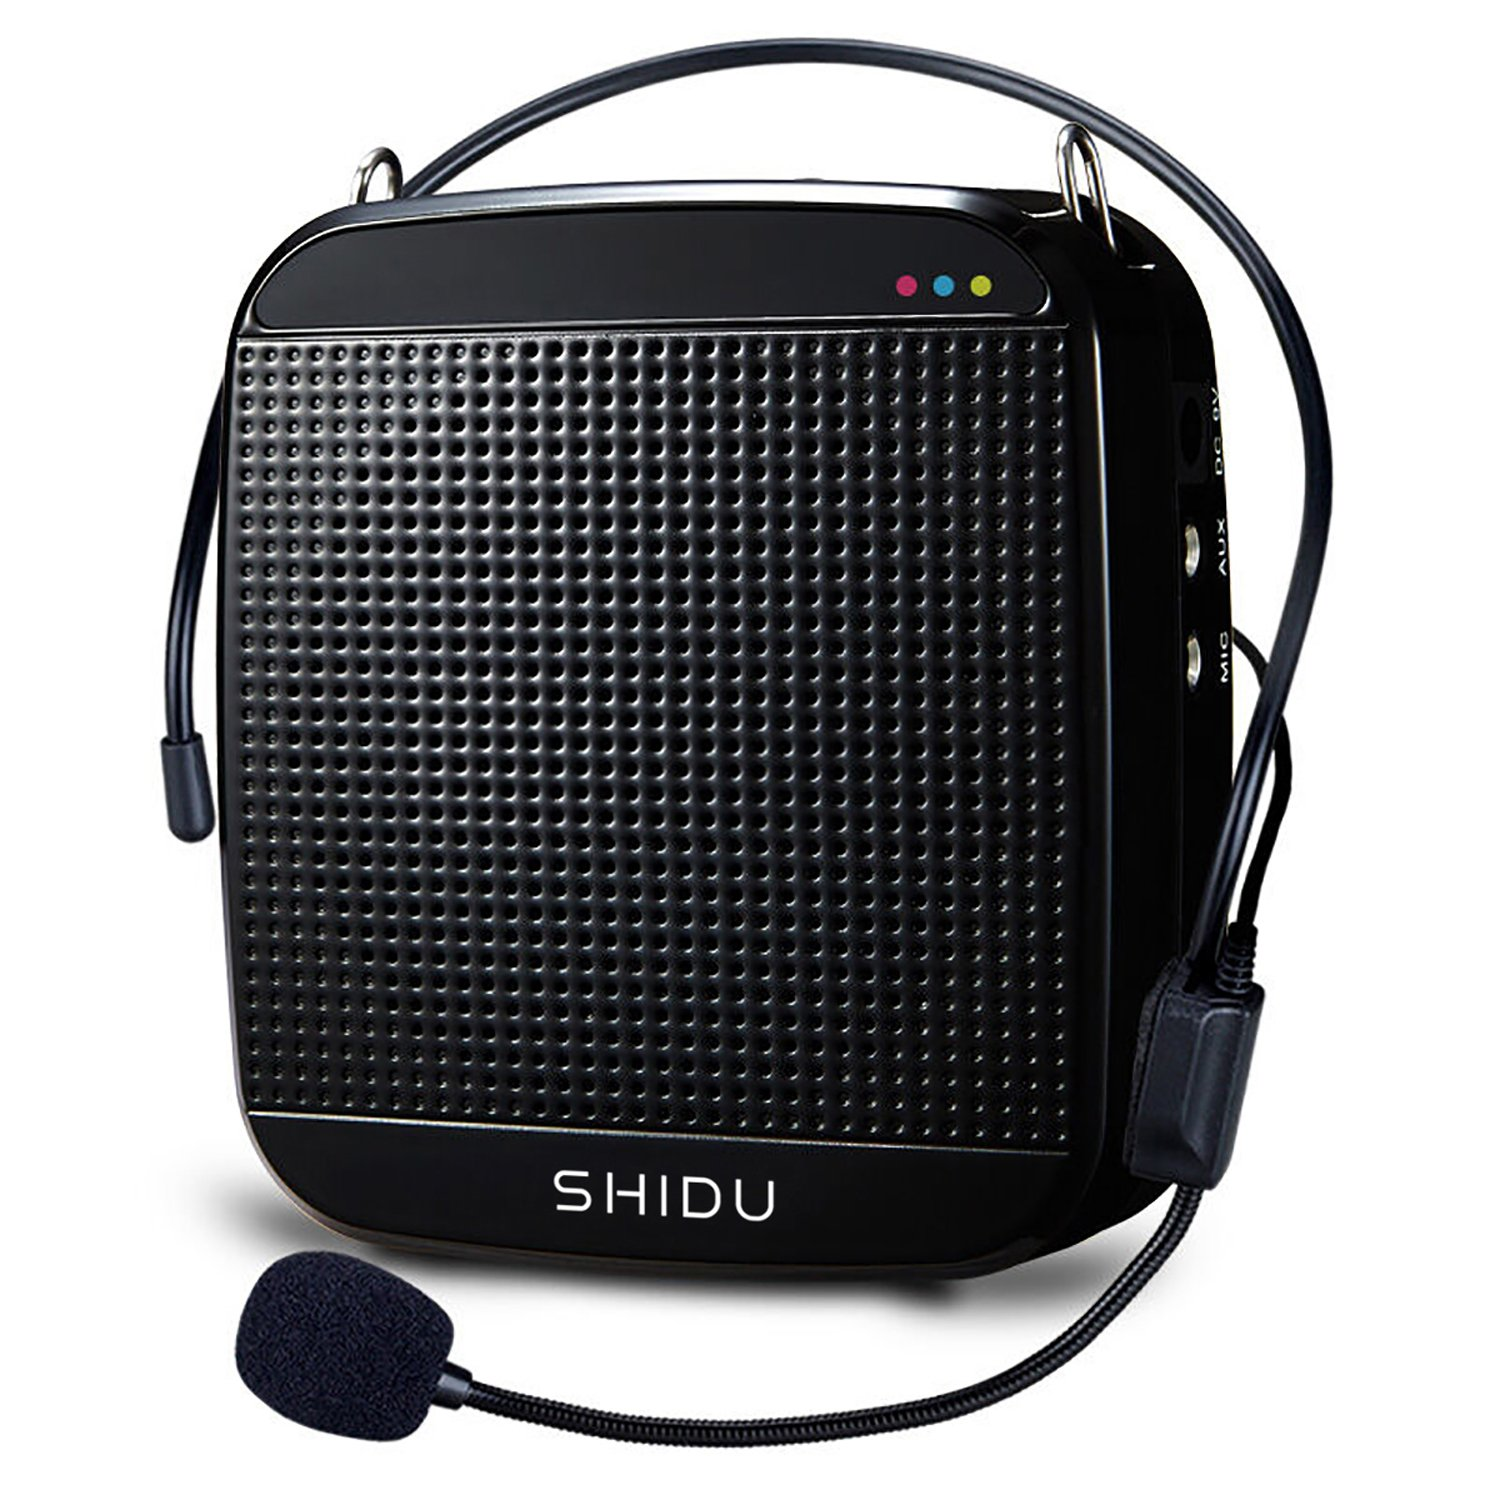 Voice Amplifier SHIDU M600 High-Power 15W Rechargeable Ultralight Portable Speaker with Loud Clear Sound for Teachers, Support MP3 Playing and Headset